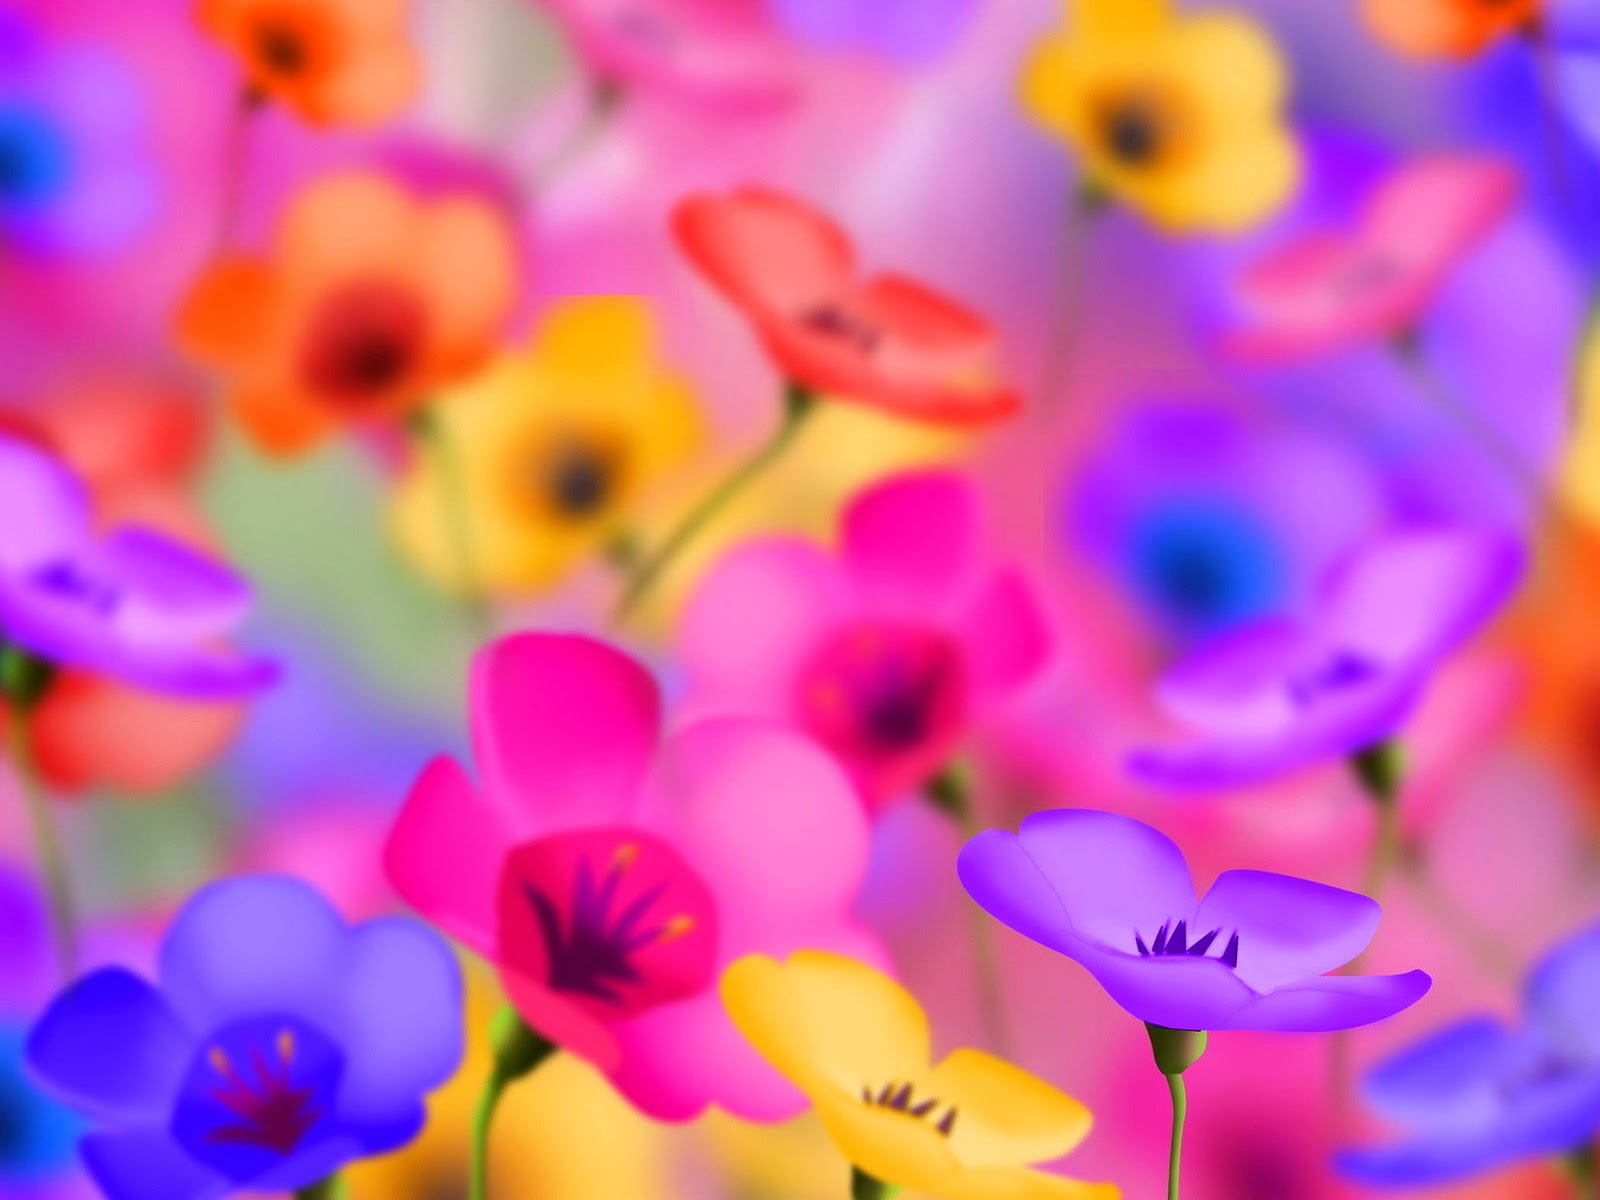 15 most beautiful hd flower walpaper for your mobile, tab, desktop